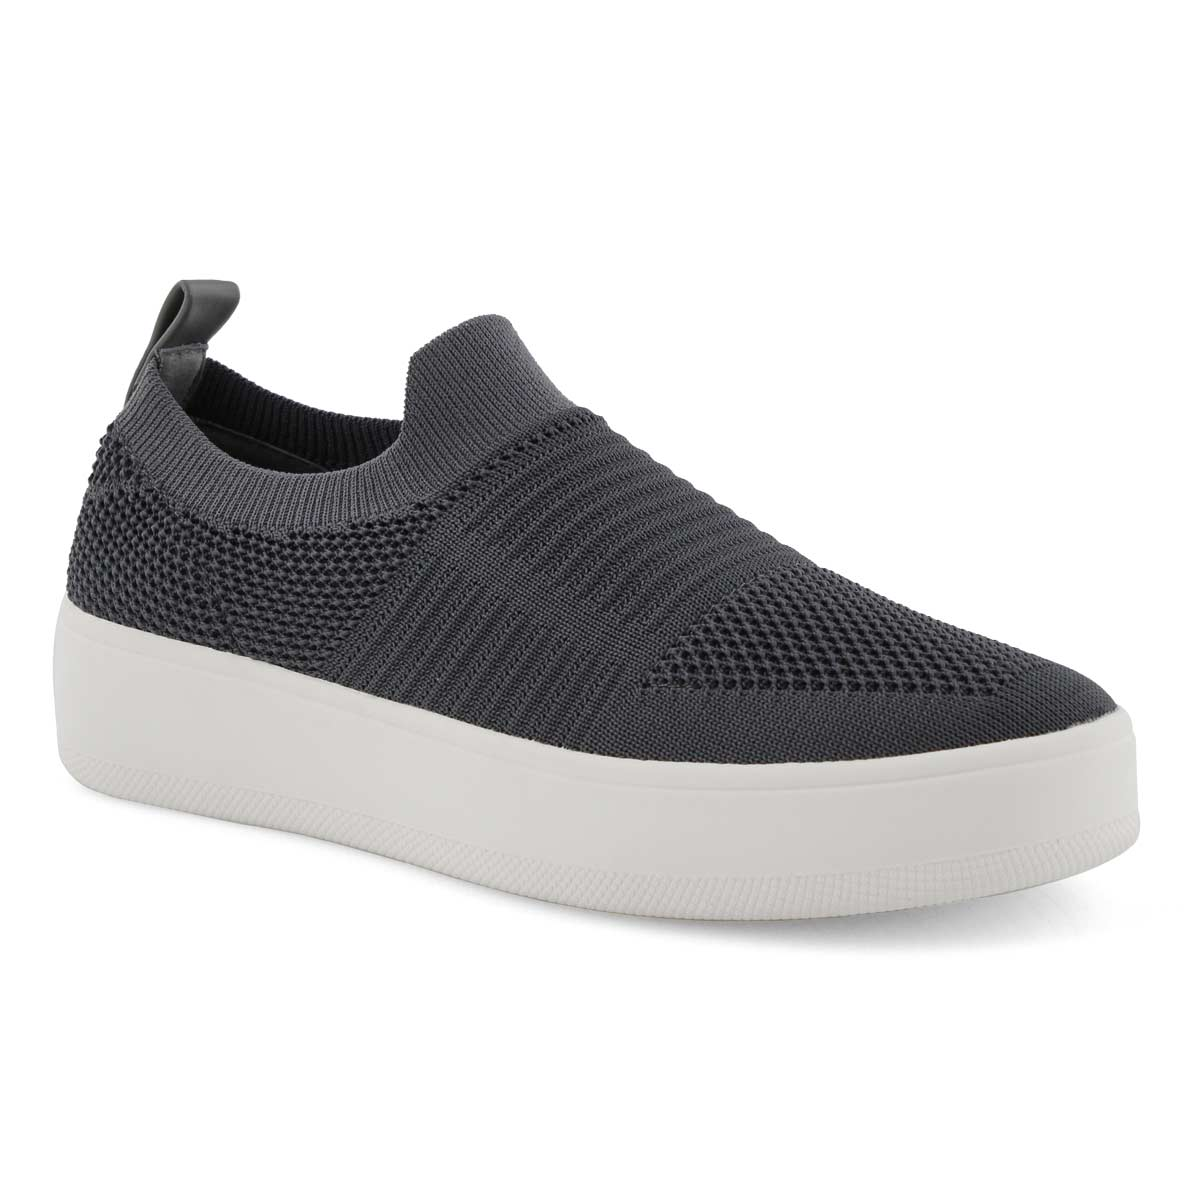 Lds Beale grey slip on fashion sneakers